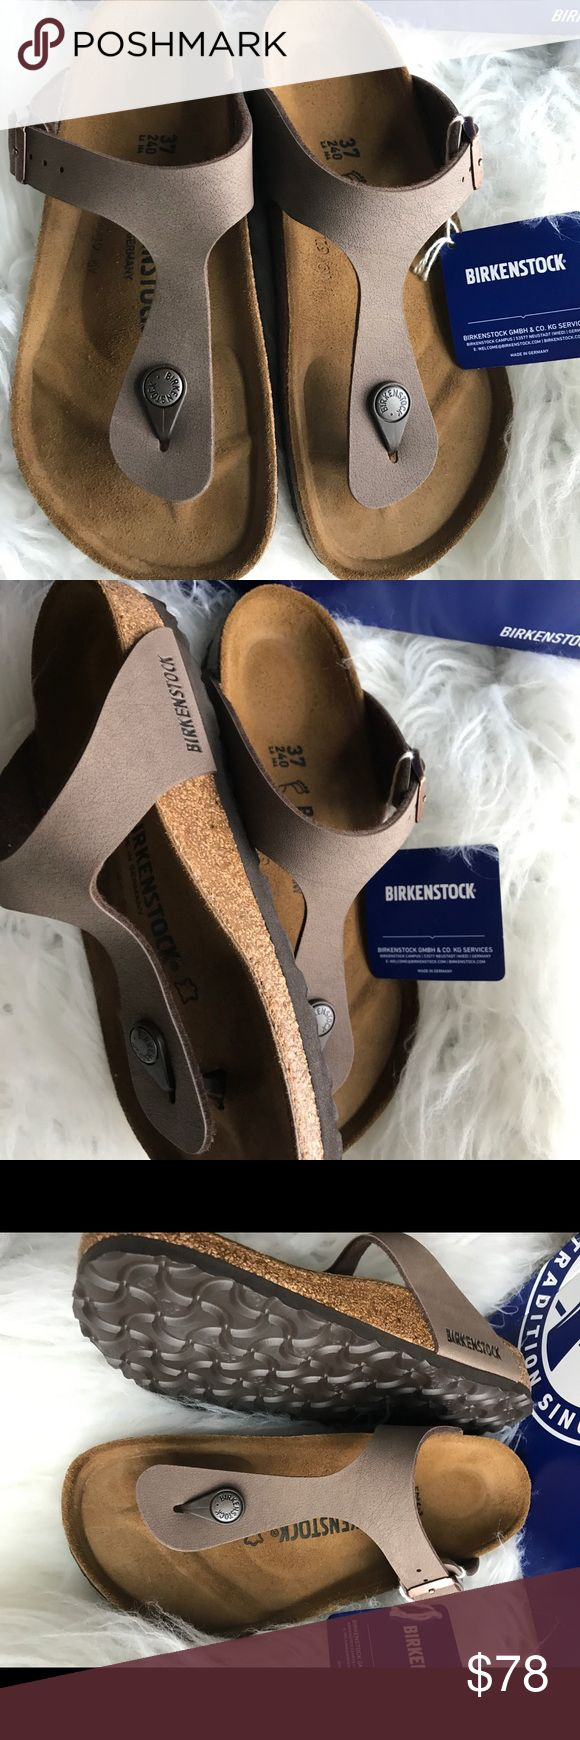 $69 FIRM BNWT BIRKENSTOCK GIZEH MOCCA 37 ON VACATION UNTIL SEPTEMBER 5th.                                            Brand new with tags & box. Box might not be in perfect shape due to handling. Beautiful birkibuc in the popular mocca color. Sz 37 regular width Please know your size in Birks before ordering. I can only guarantee I will be sending the European size stated on the listing. All items are inspected throughly and filmed before shipment.   Price is FIRM see comment for discounted…